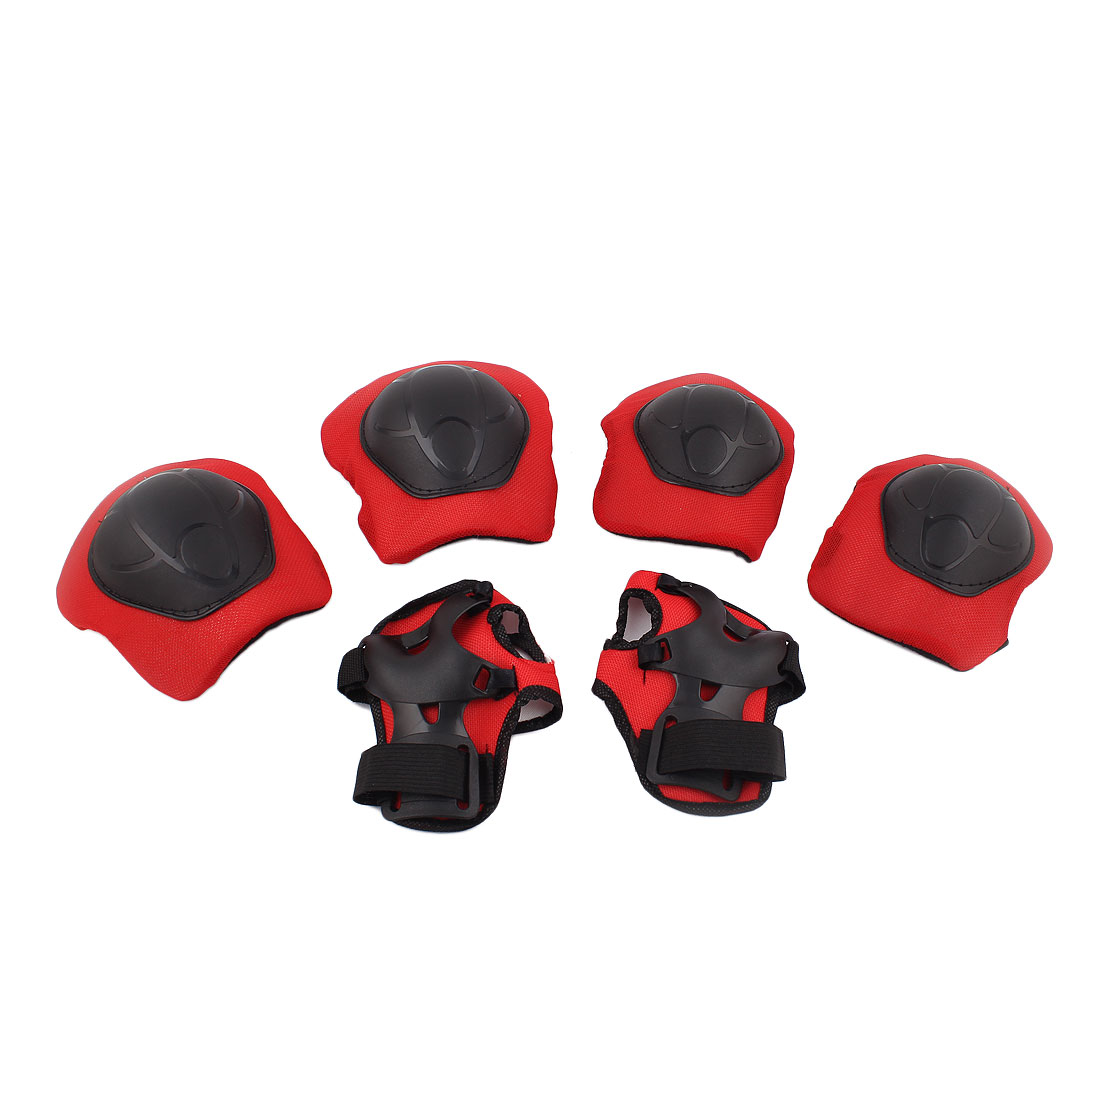 Unique Bargains Kid s Skating Skateboarding Palm Wrist Guard Elbow Knee Pads Protective Gear Combo by